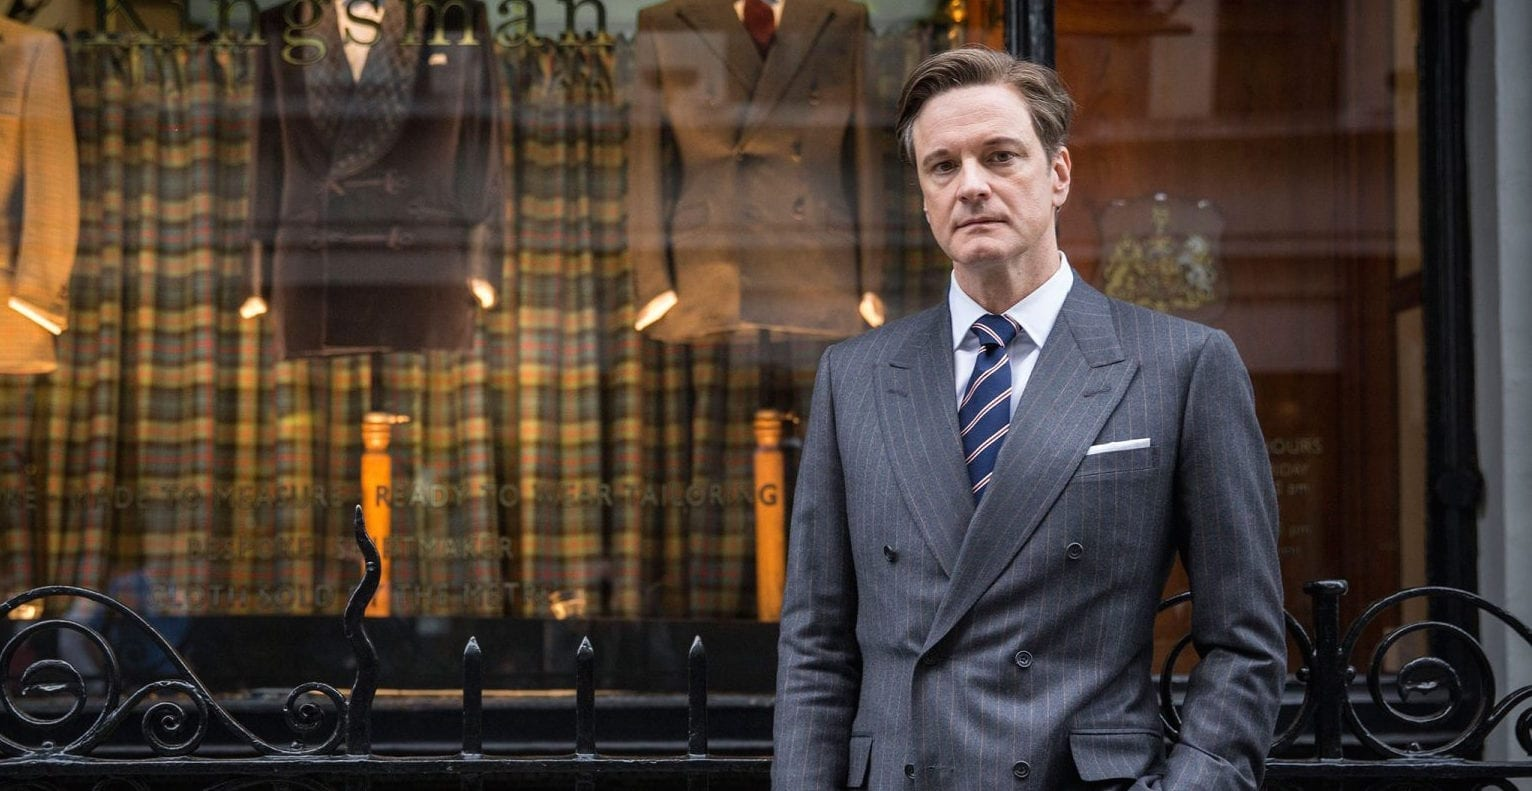 Film News: Colin Firth to return for Kingsman sequel